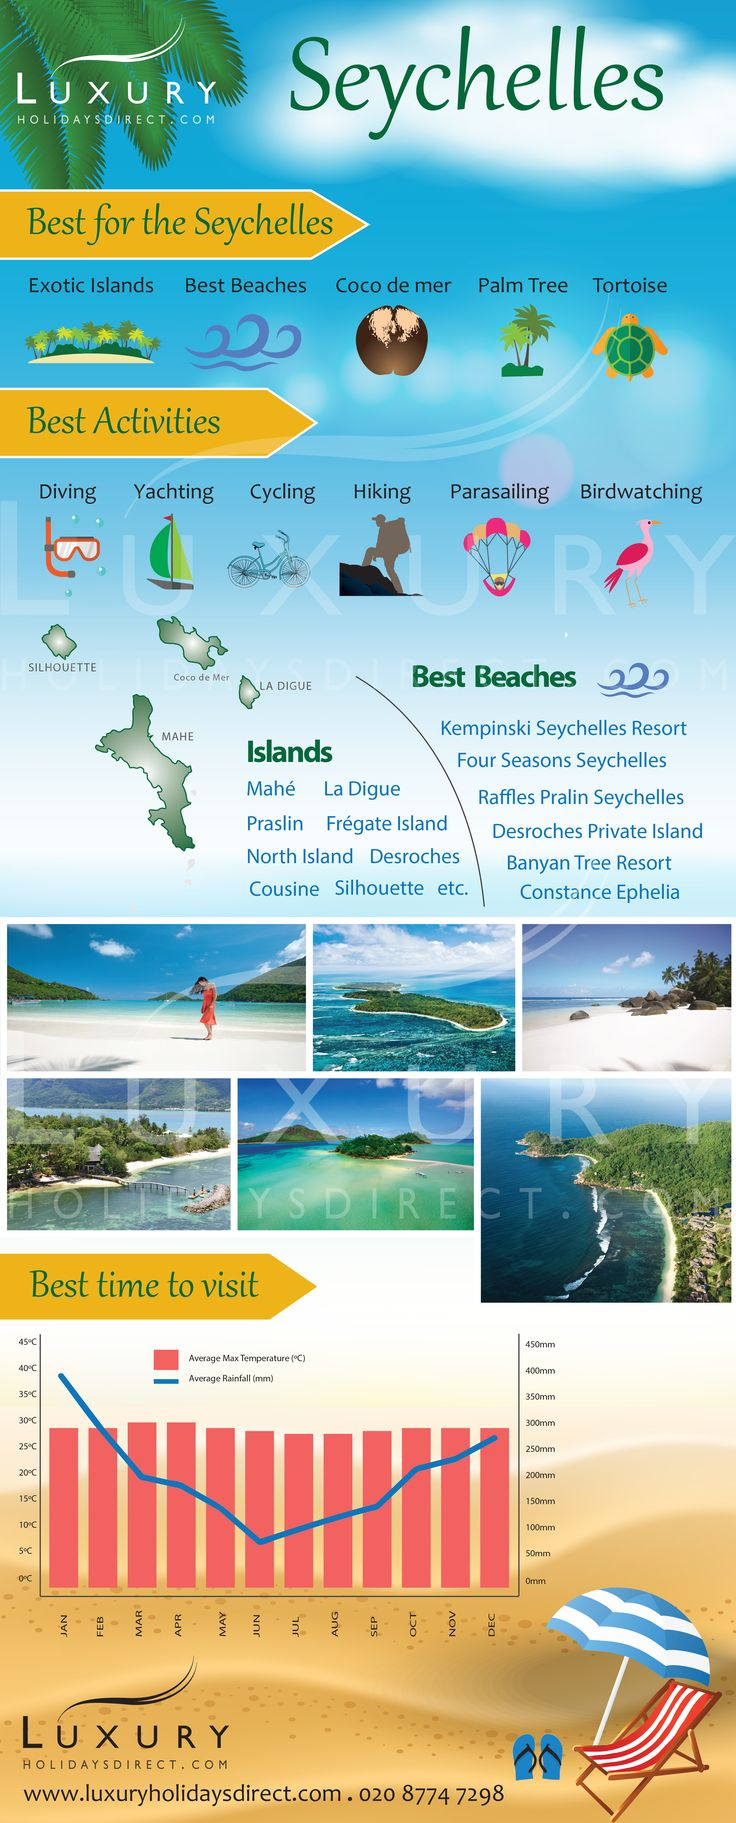 Luxury Holidays to #Seychelles - Guide to Seychelles (Infographic)